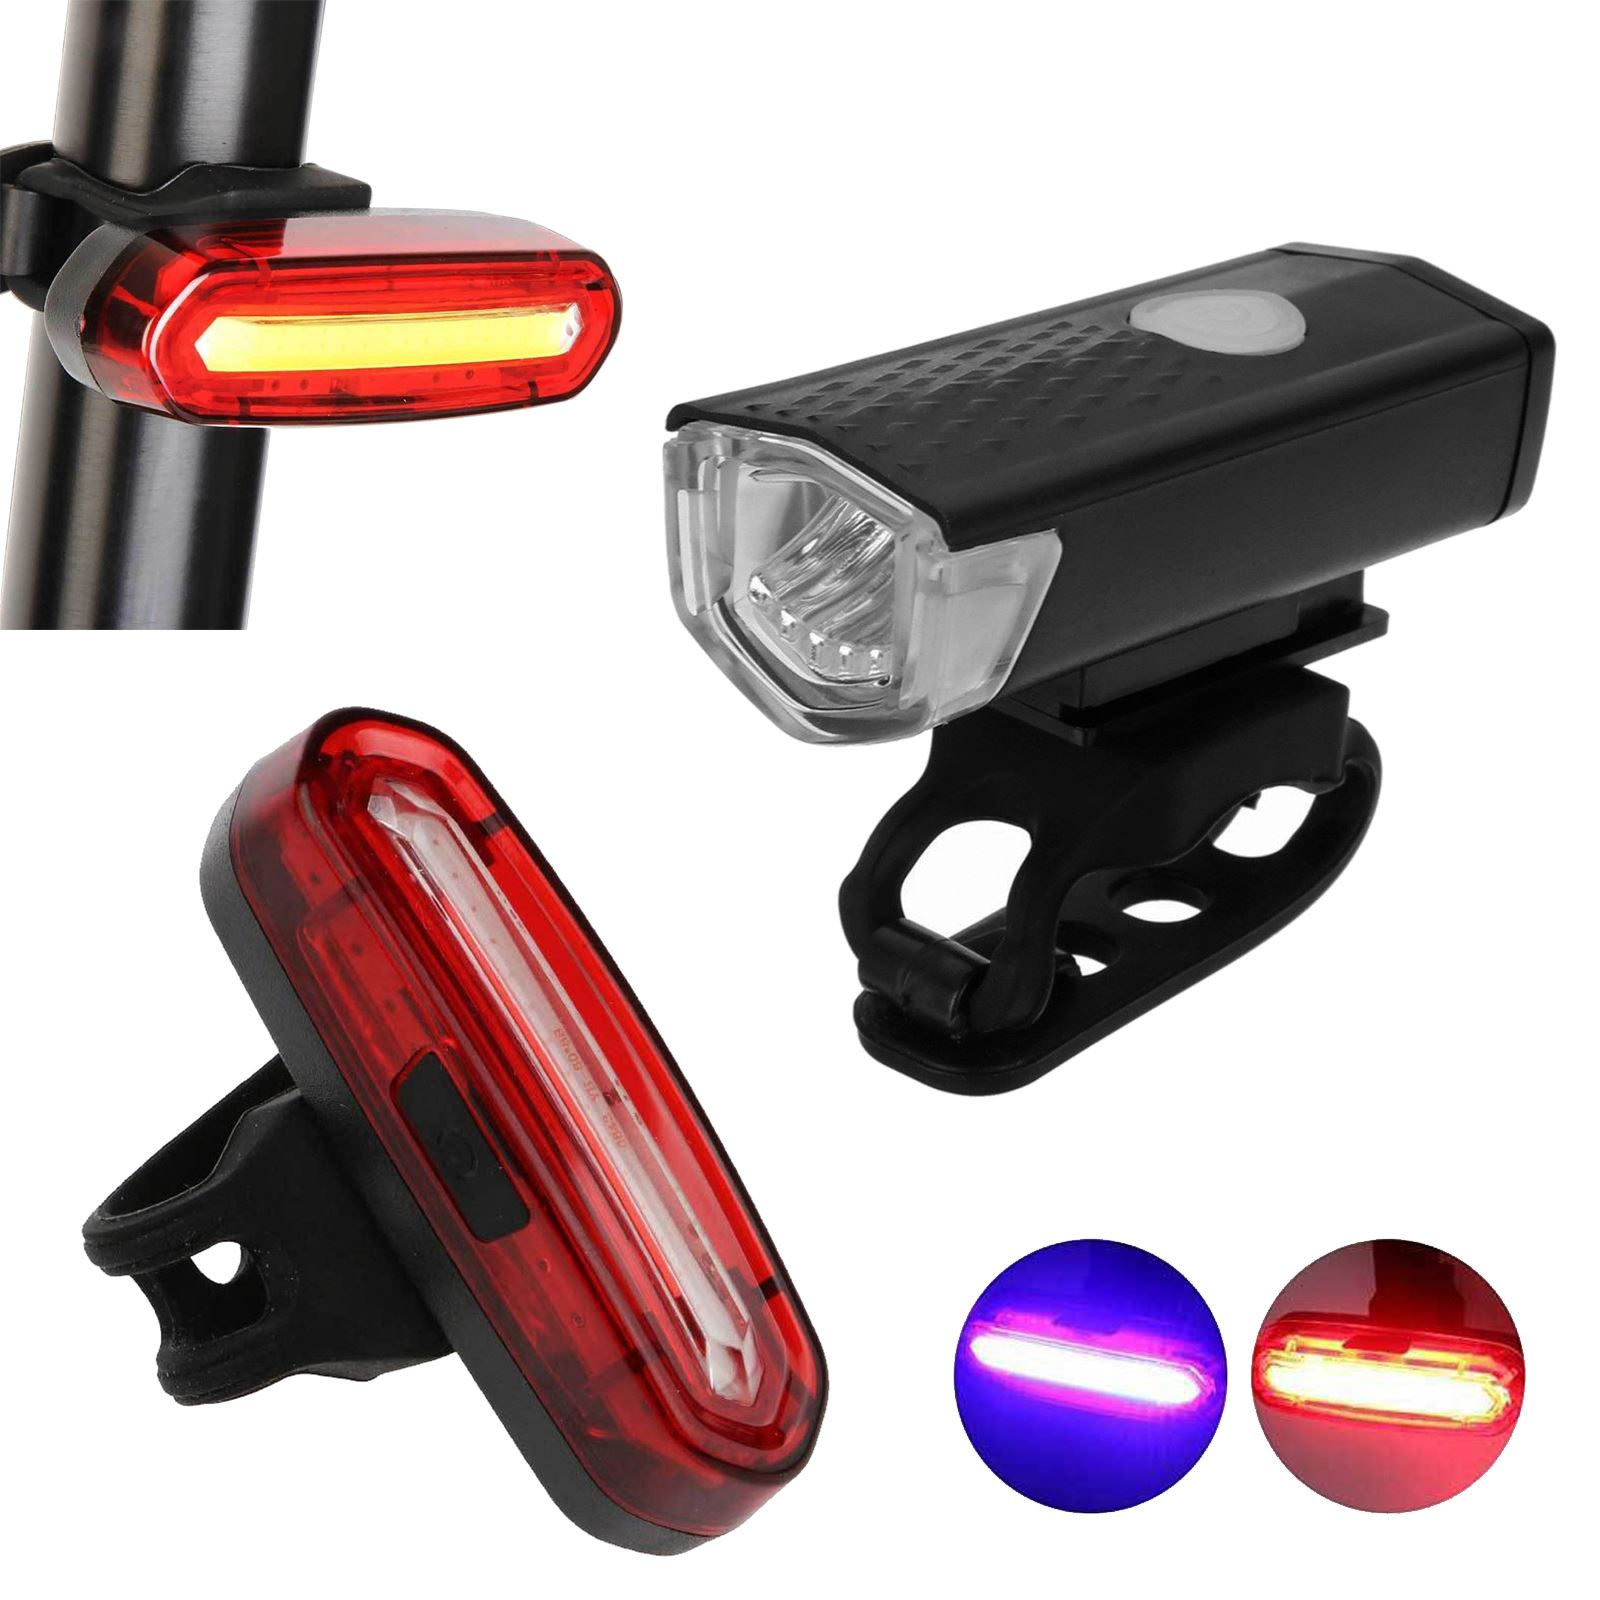 USB Rechargeable LED Bright Bike Front Headlight and Rear Tail Light Set